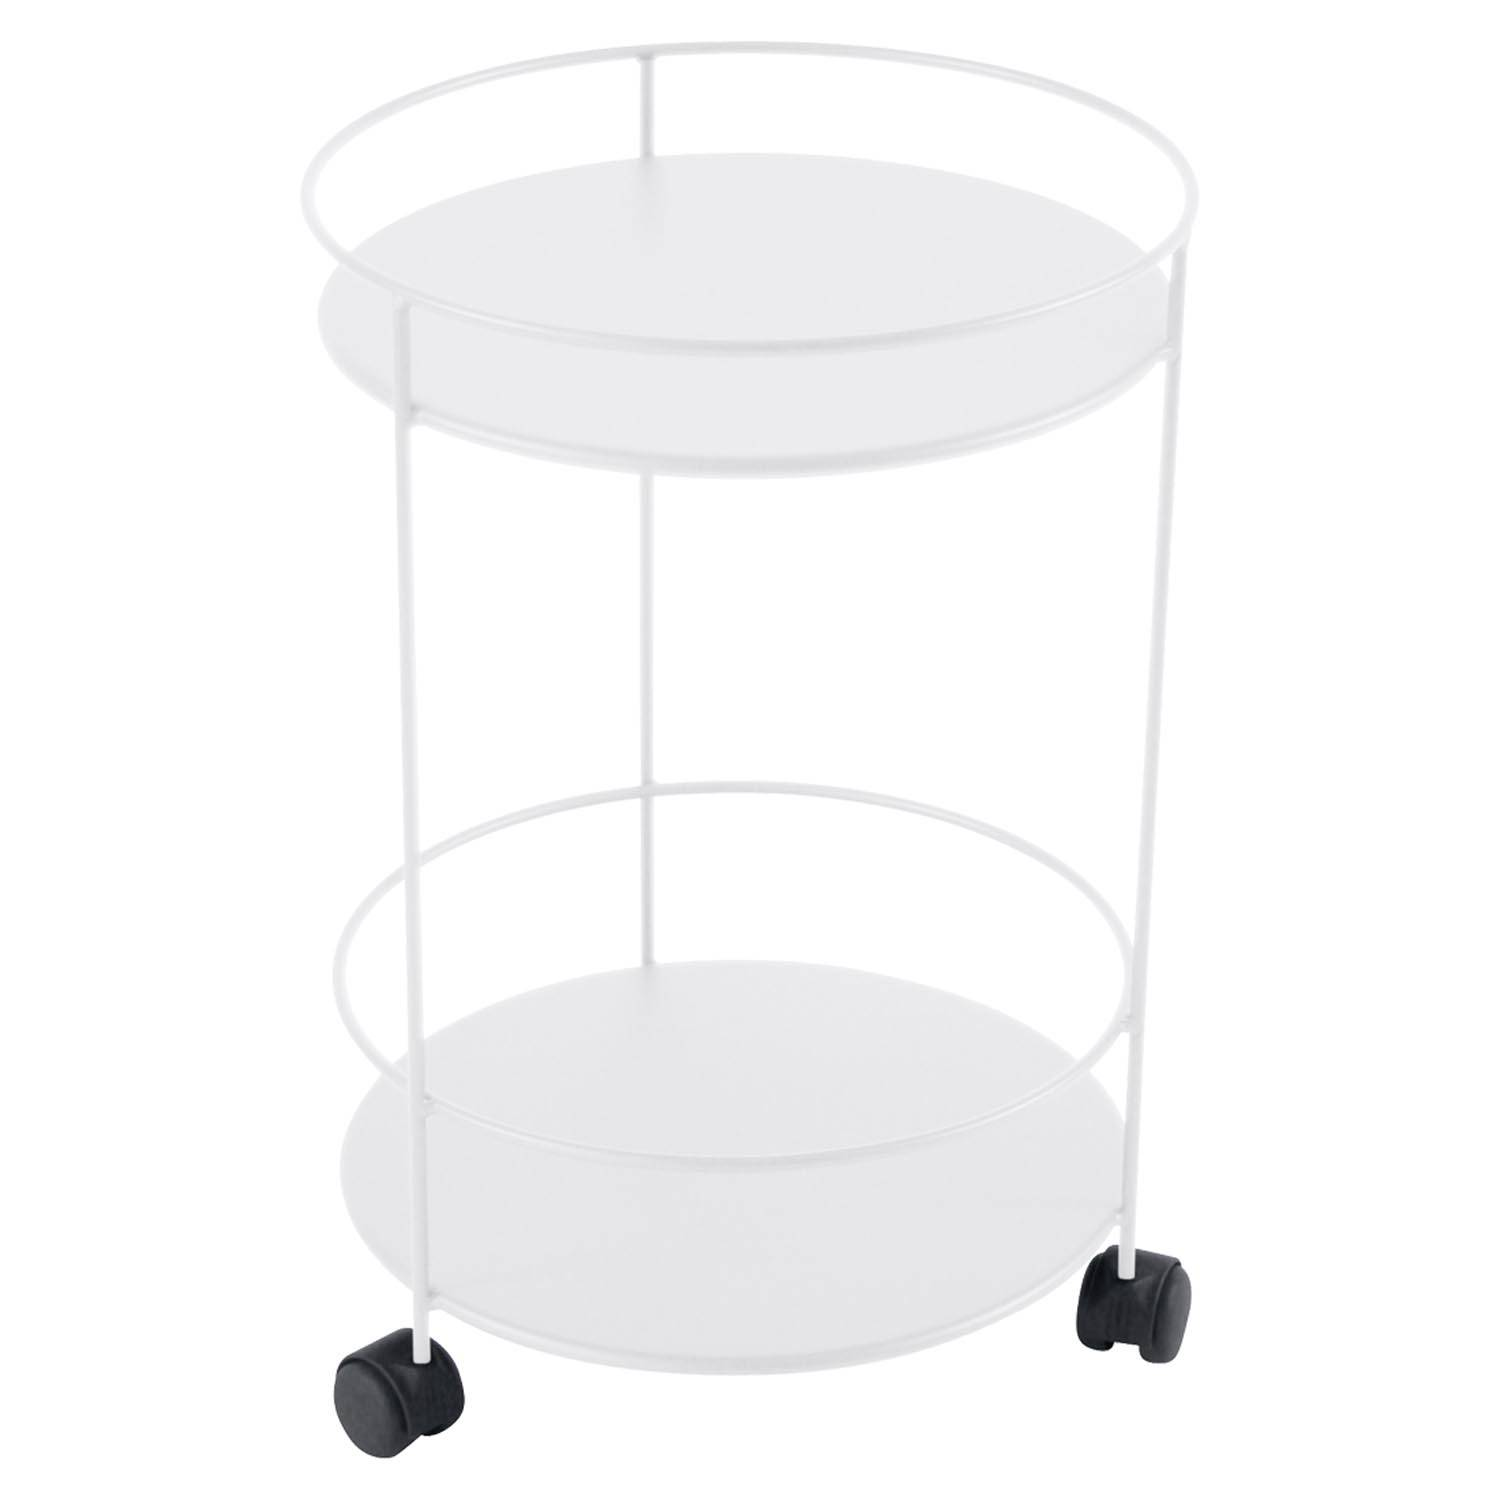 Fermob Small Table Perforated Ø40, Cotton white